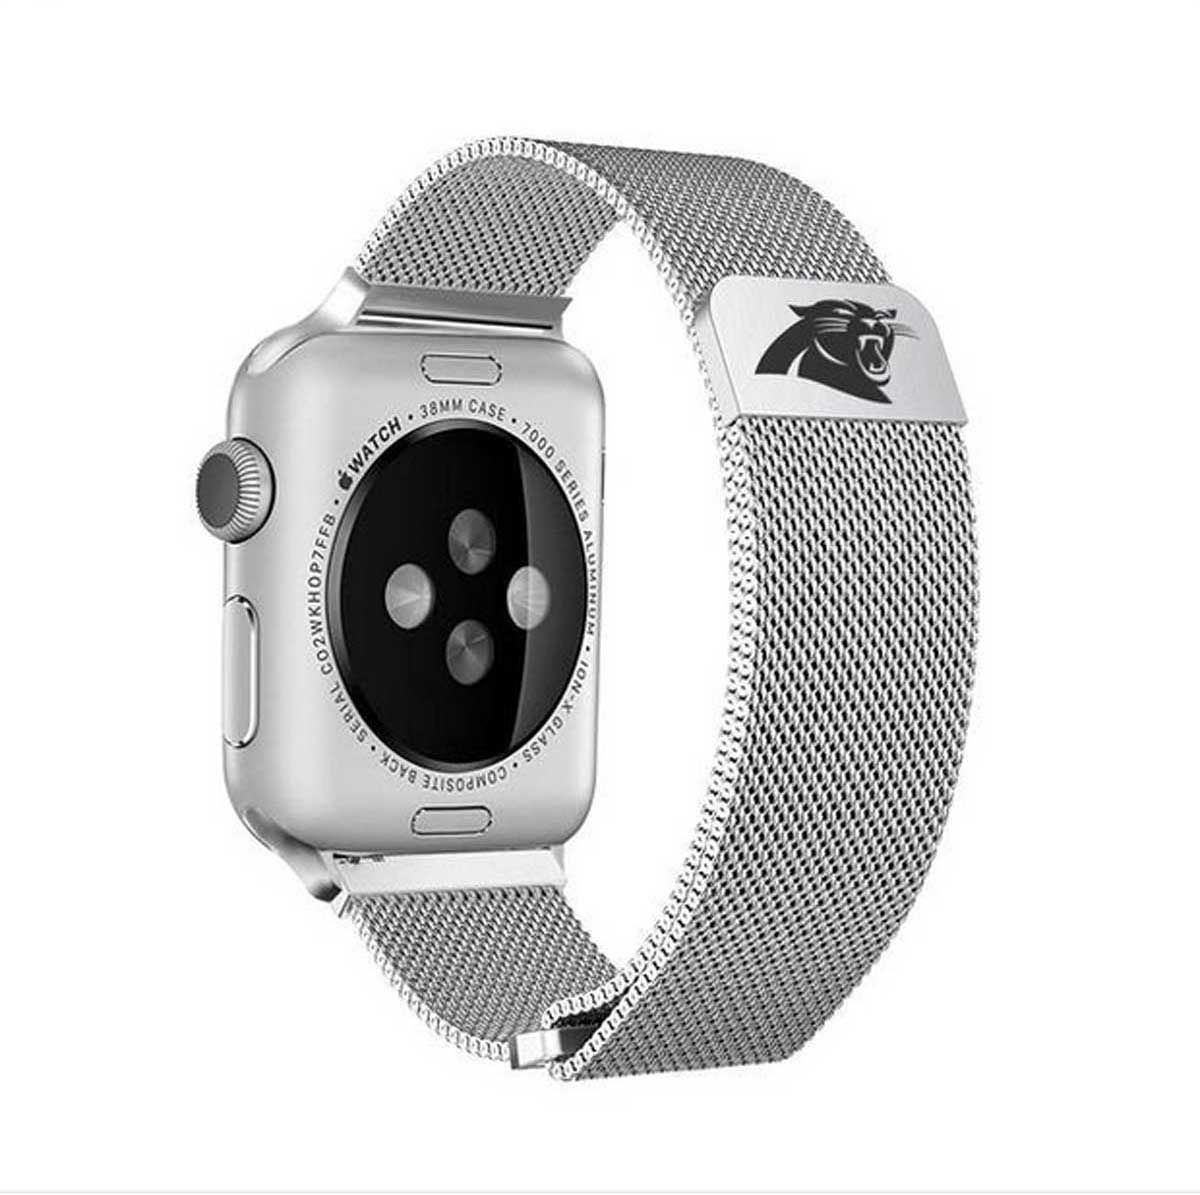 Must Have For Carolina Panthers Fans Officially Licensed Stainless Steel Watchband For Your Apple Watch Fits Apple Series 1 2 3 Apple Watch Watch Bands Apple Watch Bands